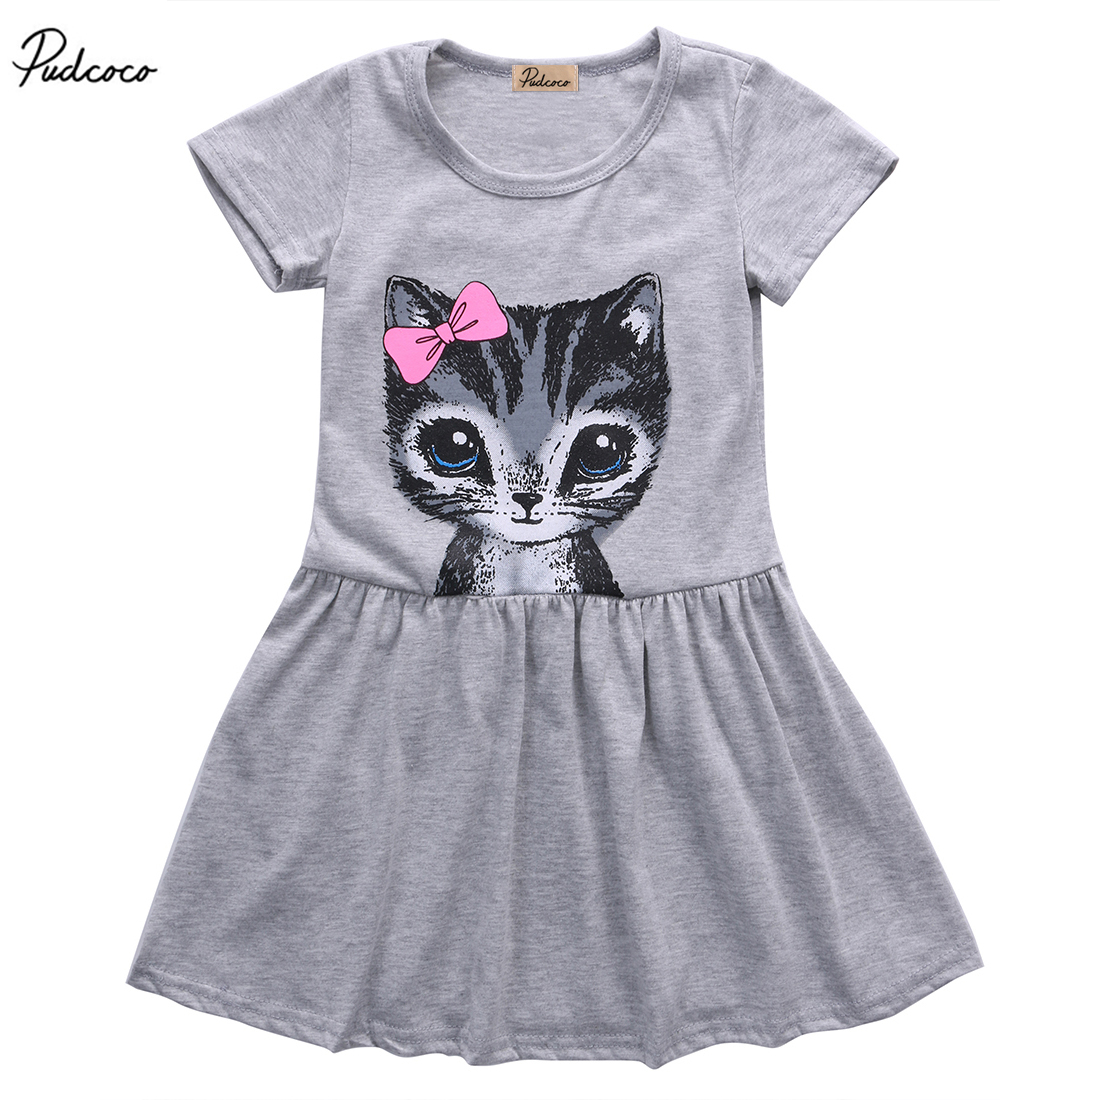 2017 Cute Cat Lovely Toddler Baby Girls Princess Short Sleeve Dress Party Kids Tulle Tutu Dress Gray Pink toddler kids baby girls sleeveless orange cute cartoon back zipper fox fancy dress princess party tulle tutu dresses